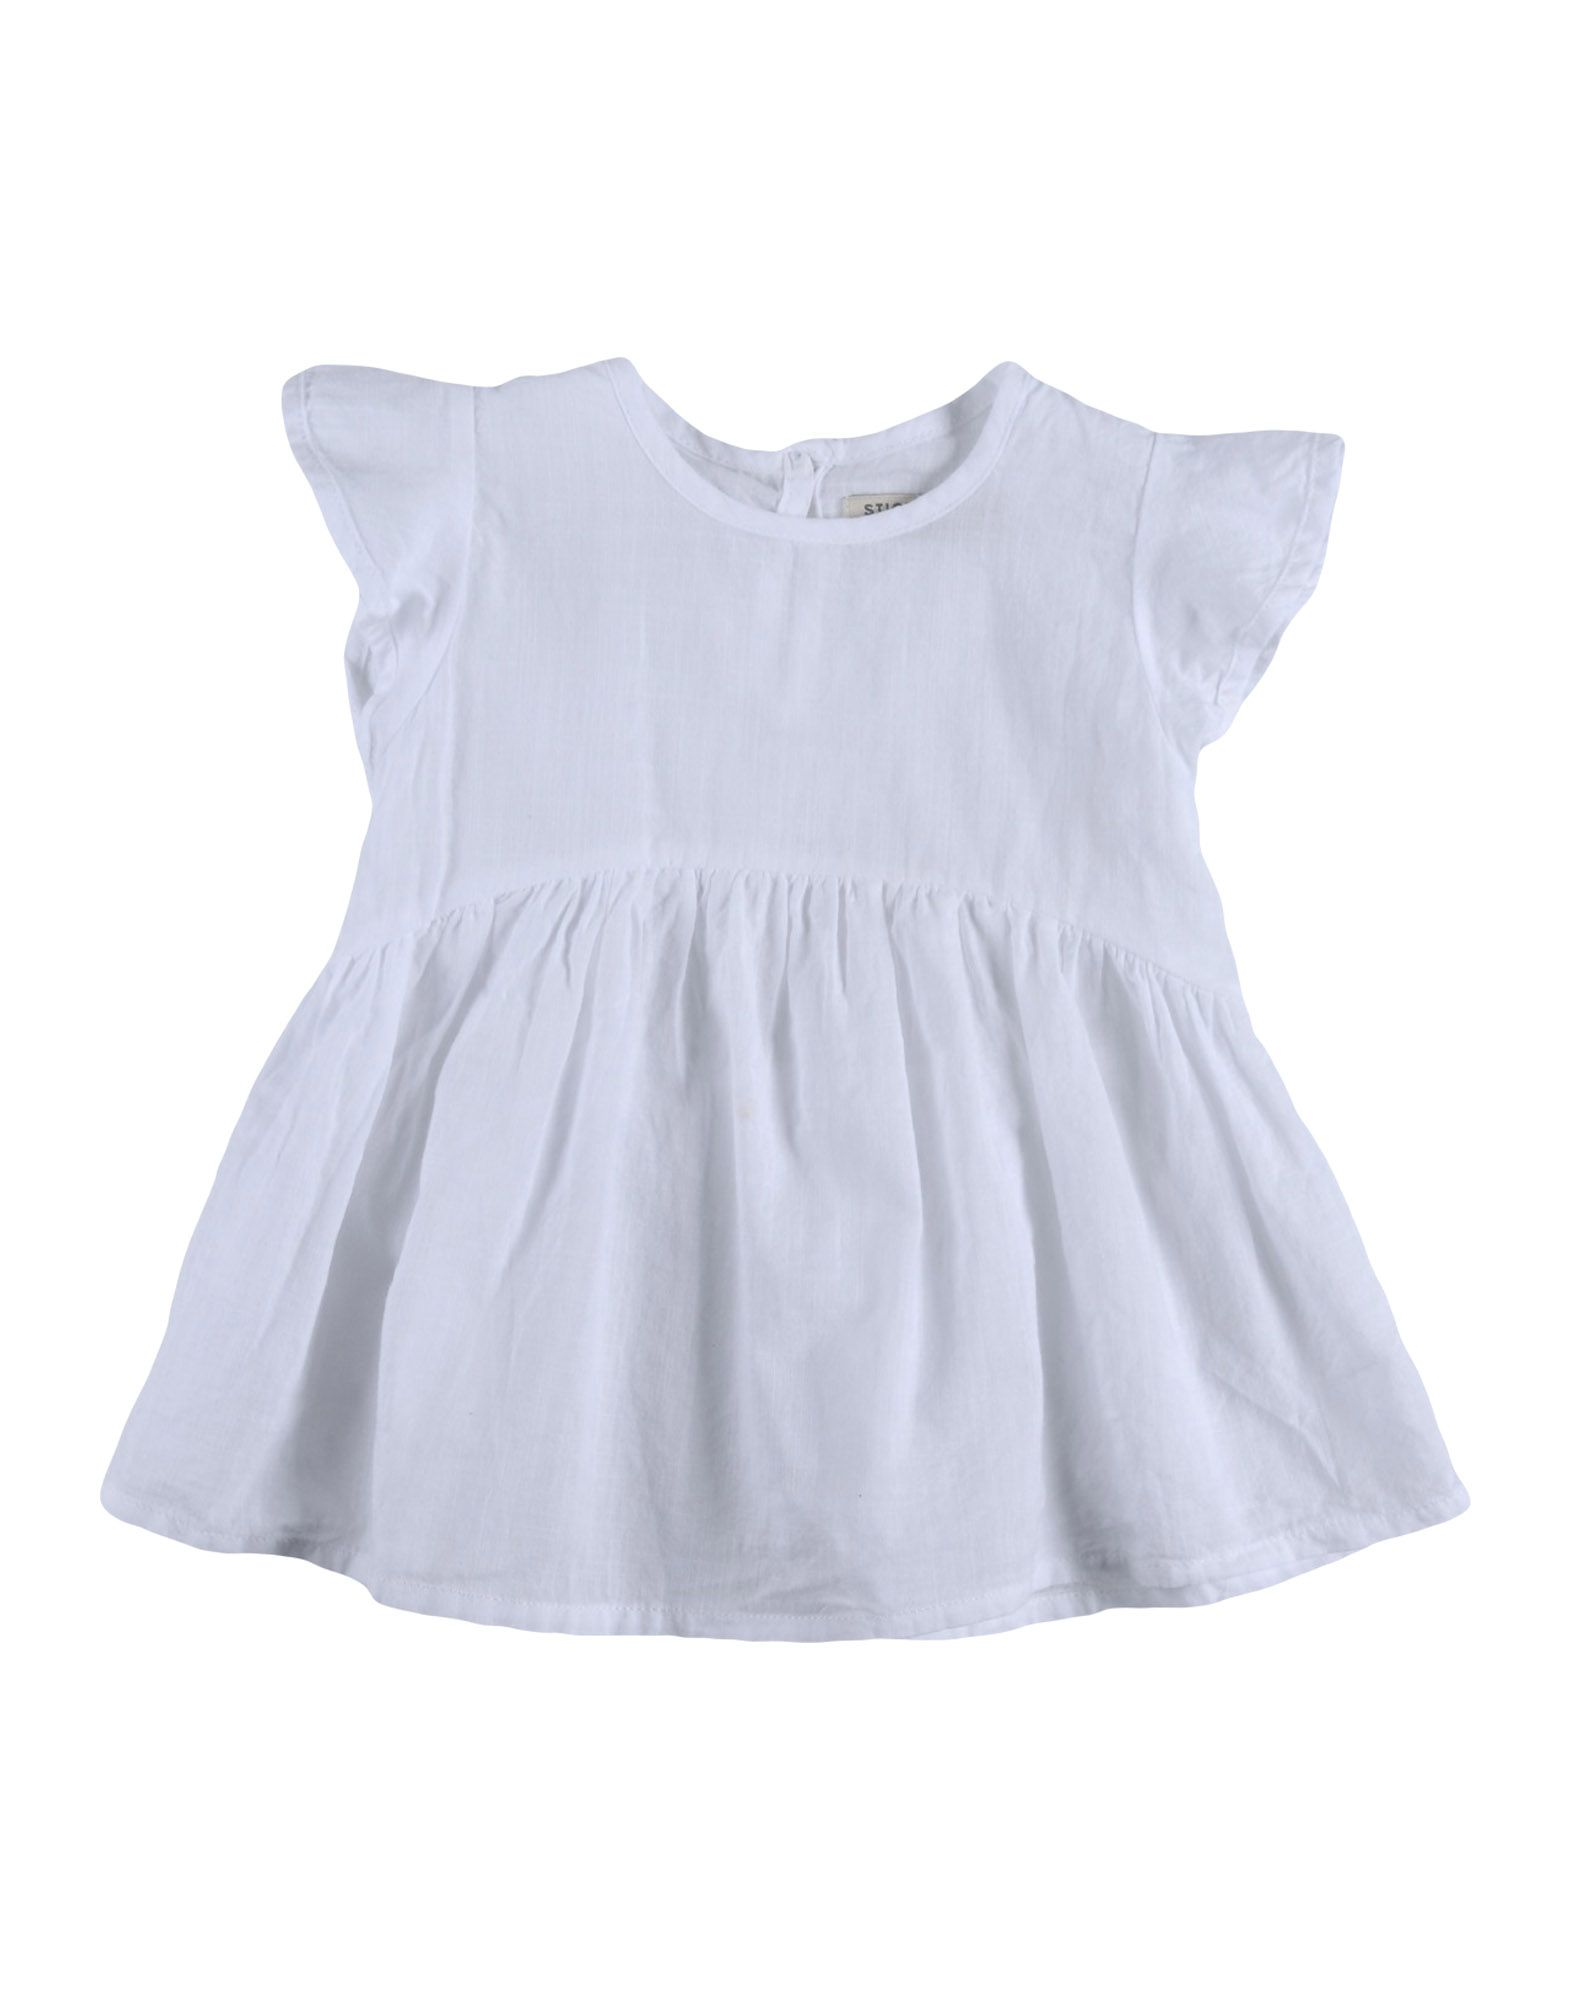 Sticky Fudge clothing for baby girl   toddler 0-24 months  57332f46734